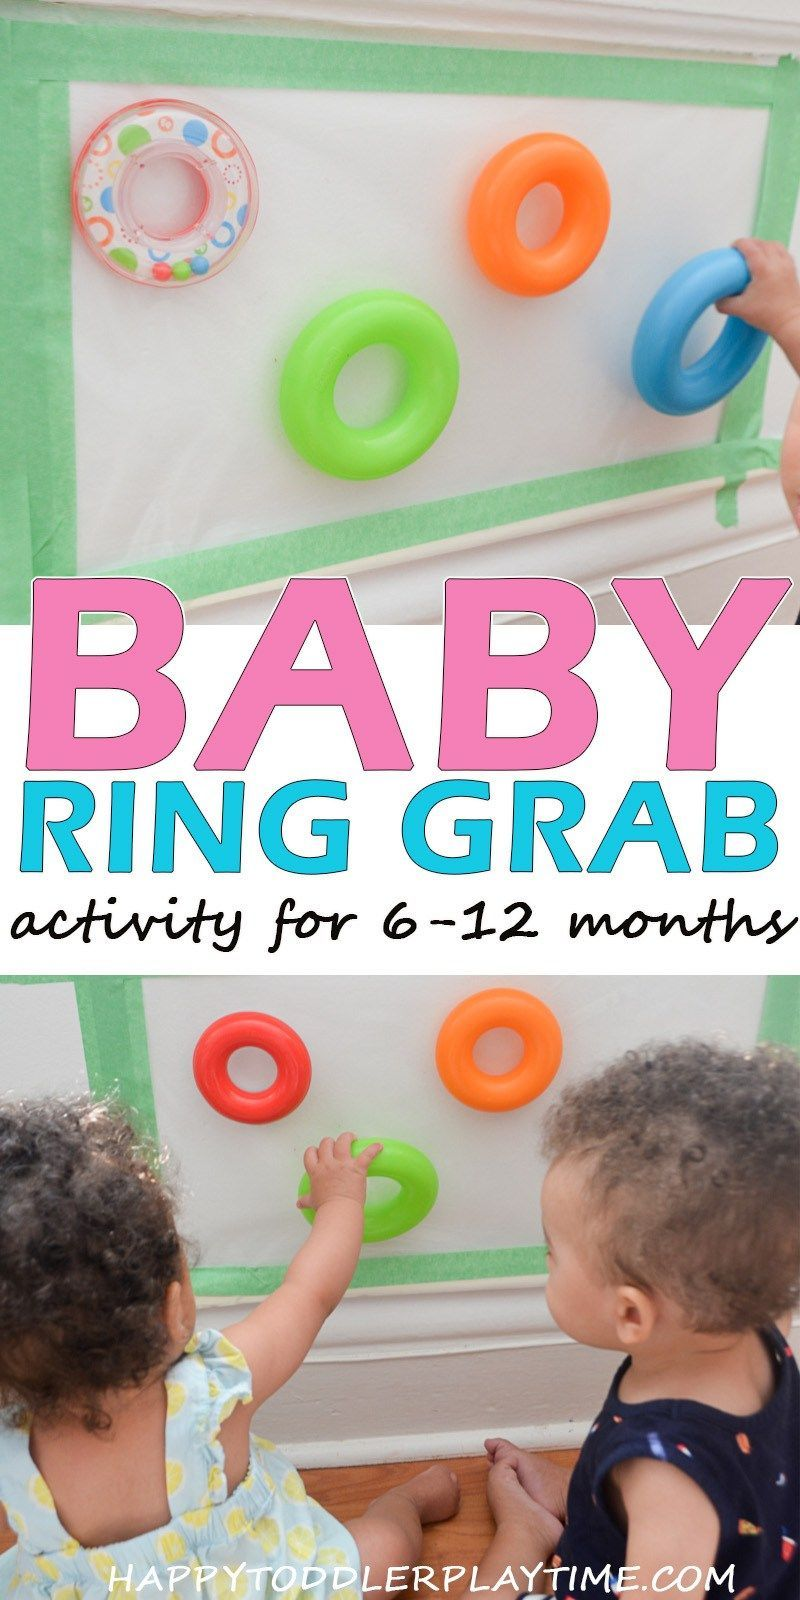 Baby Ring Grab Sticky Wall Activity in 2020 Baby play